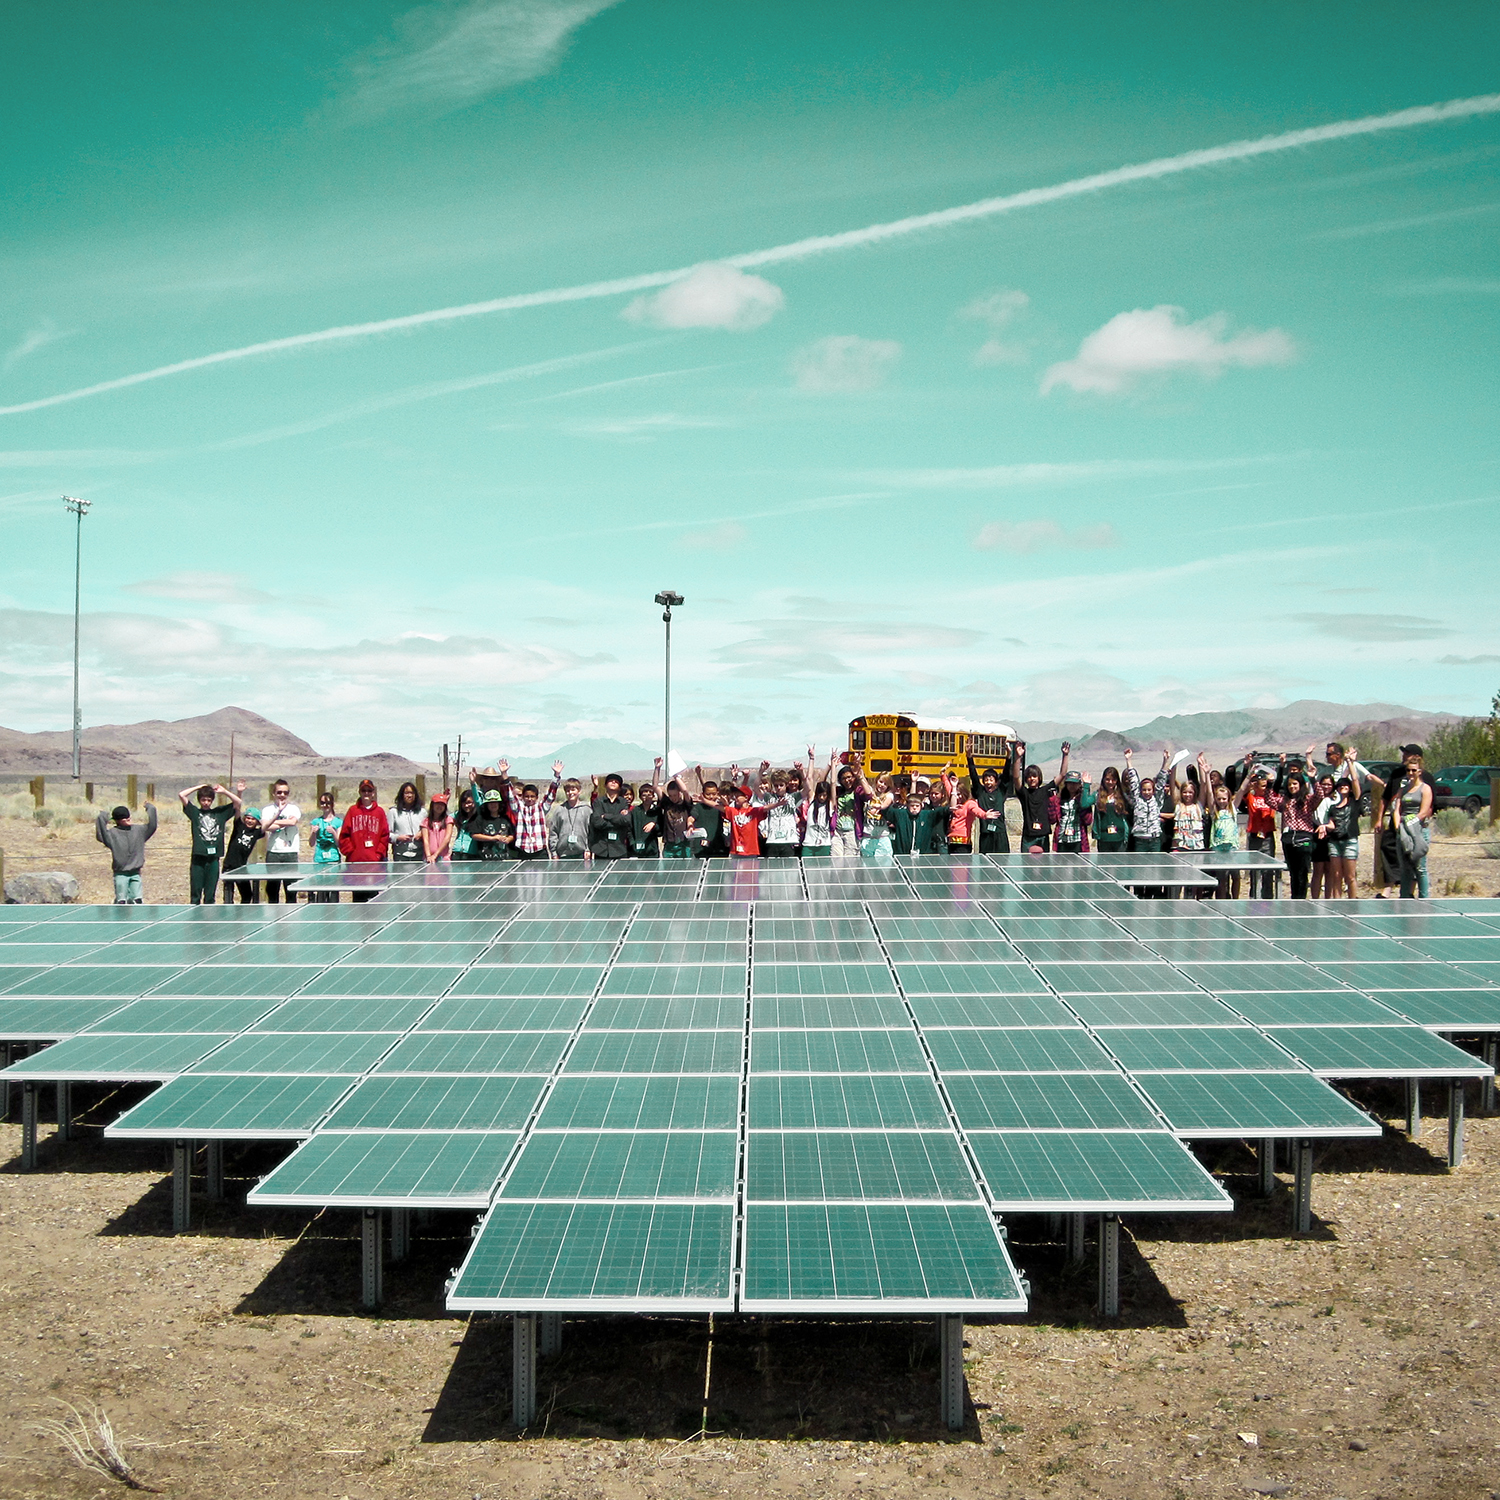 Black Rock Solar photovoltaic array at the Food Bank of Northern Nevada. Photo by Marnee Benson.